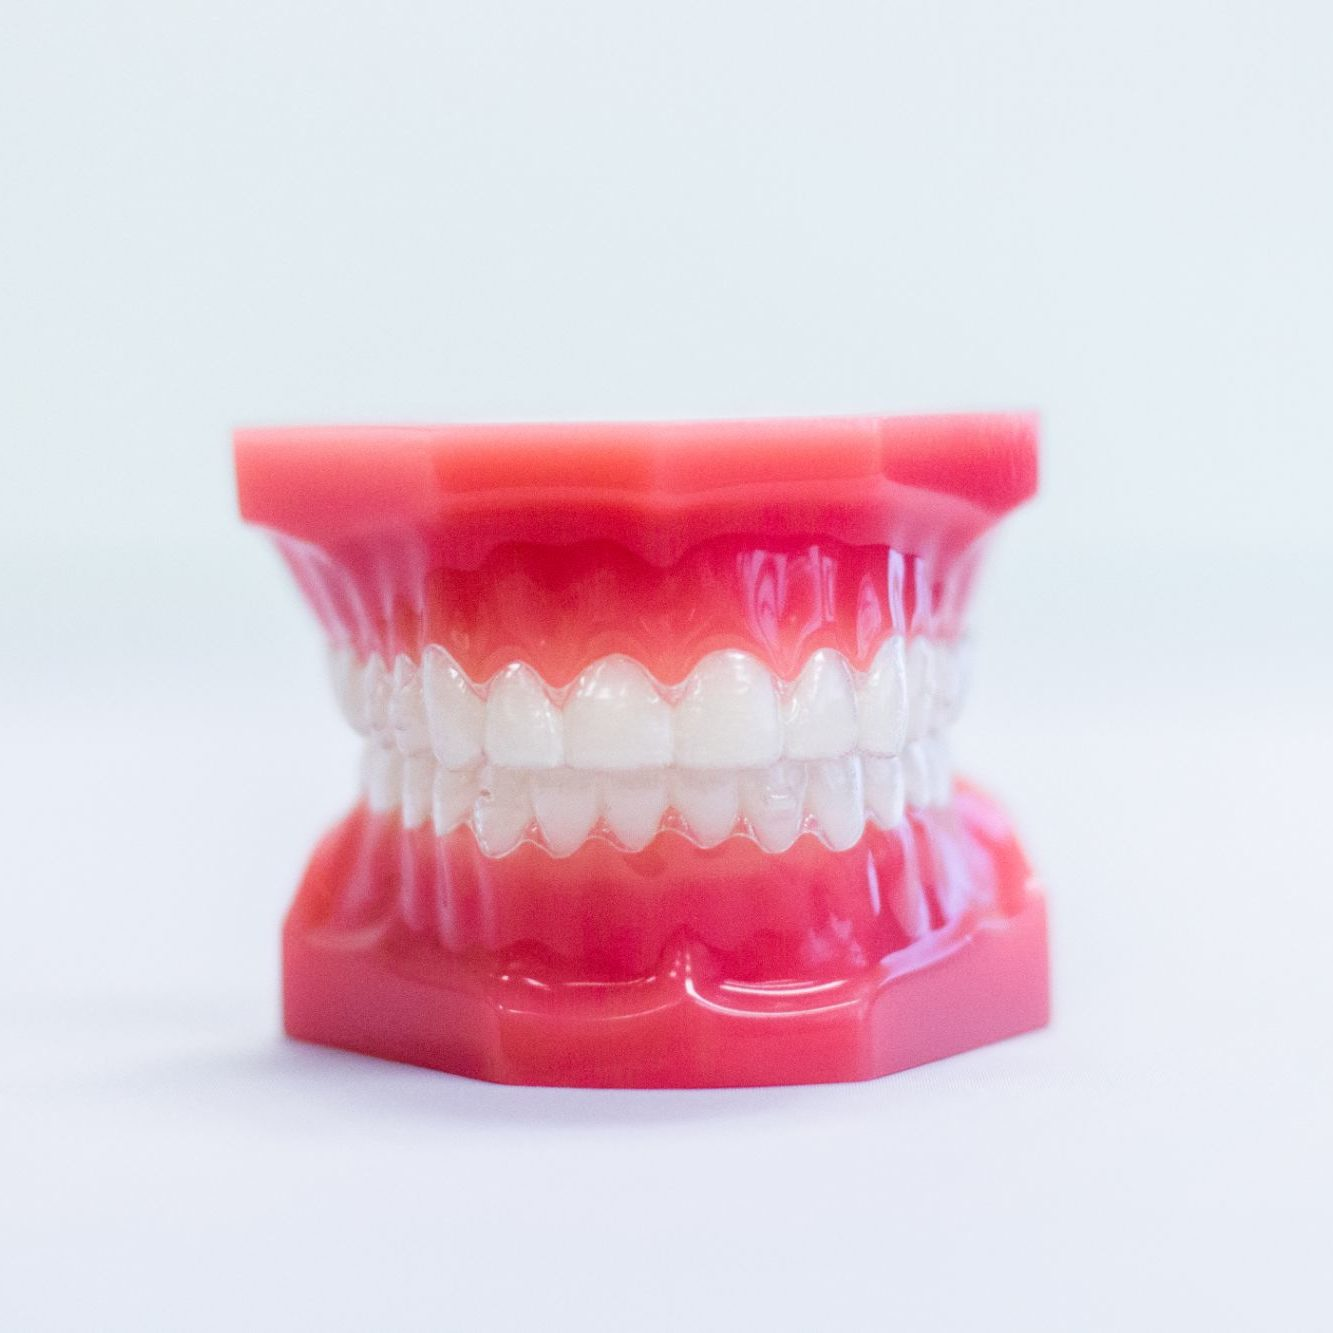 Invisalign aligners on a teeth mold